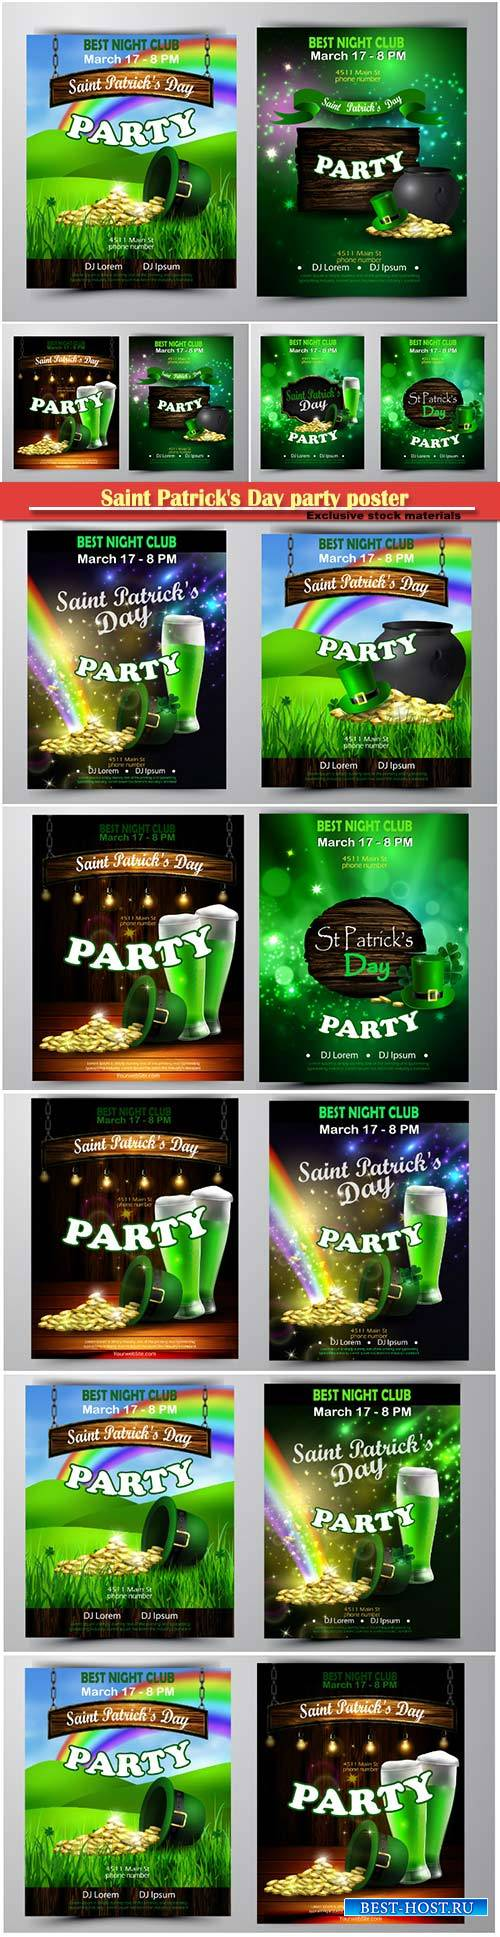 Irish holiday Saint Patrick s Day party poster